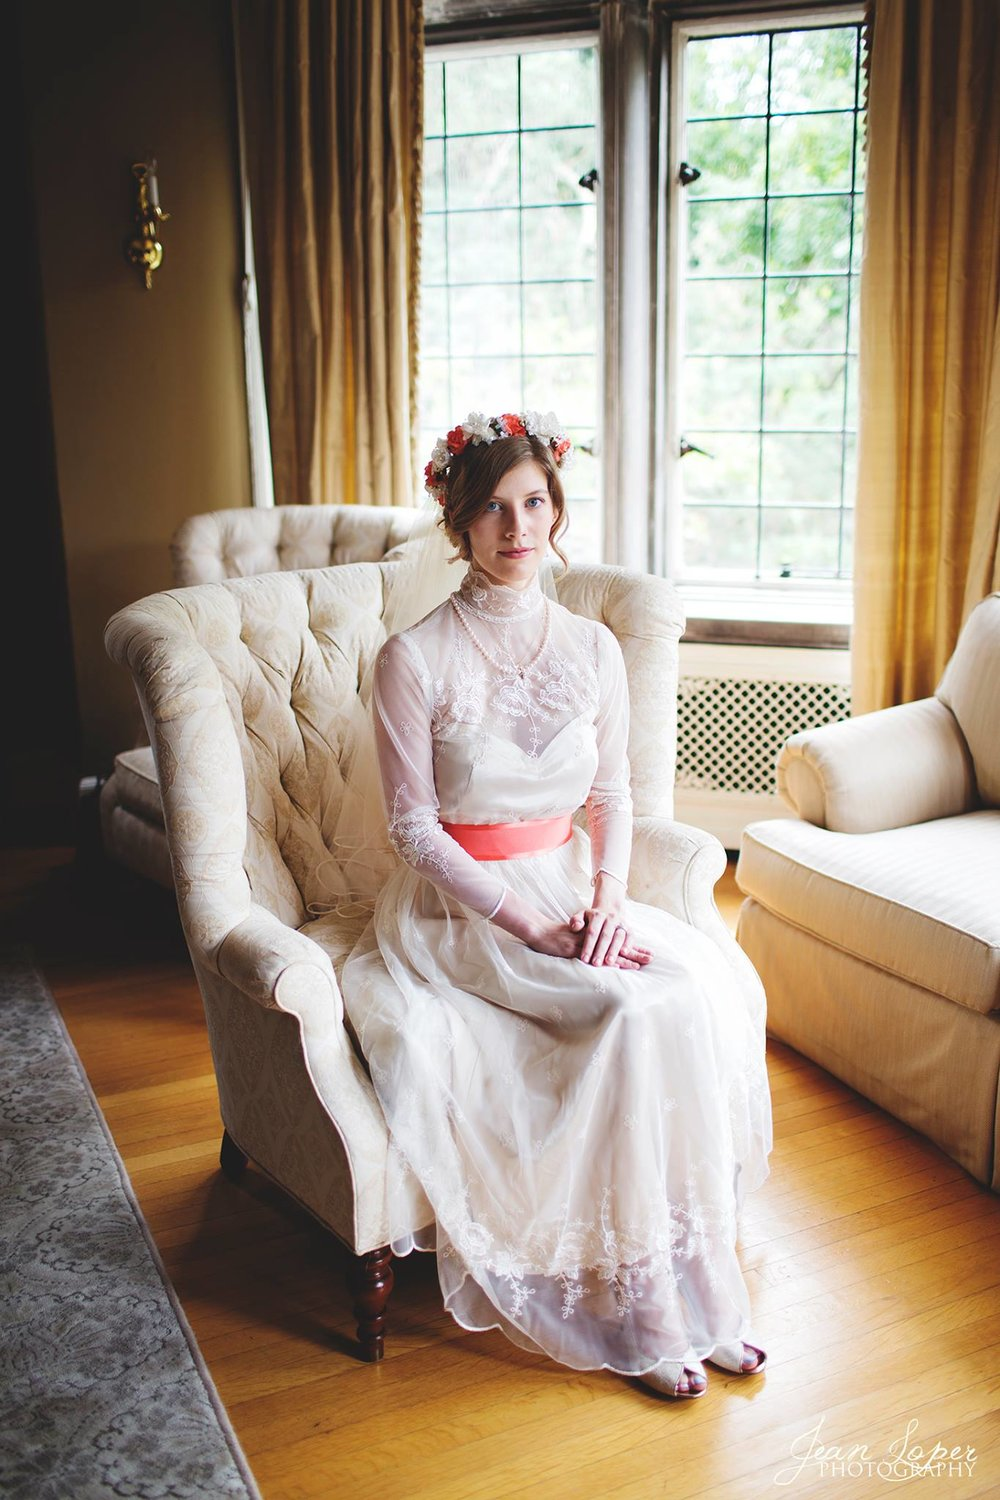 Indianapolis, Indiana // Originally purchased and worn by my mom and aunt. I up-cycled the dress and wore it for my wedding day. Belt designed and created by Koledon Lambright.